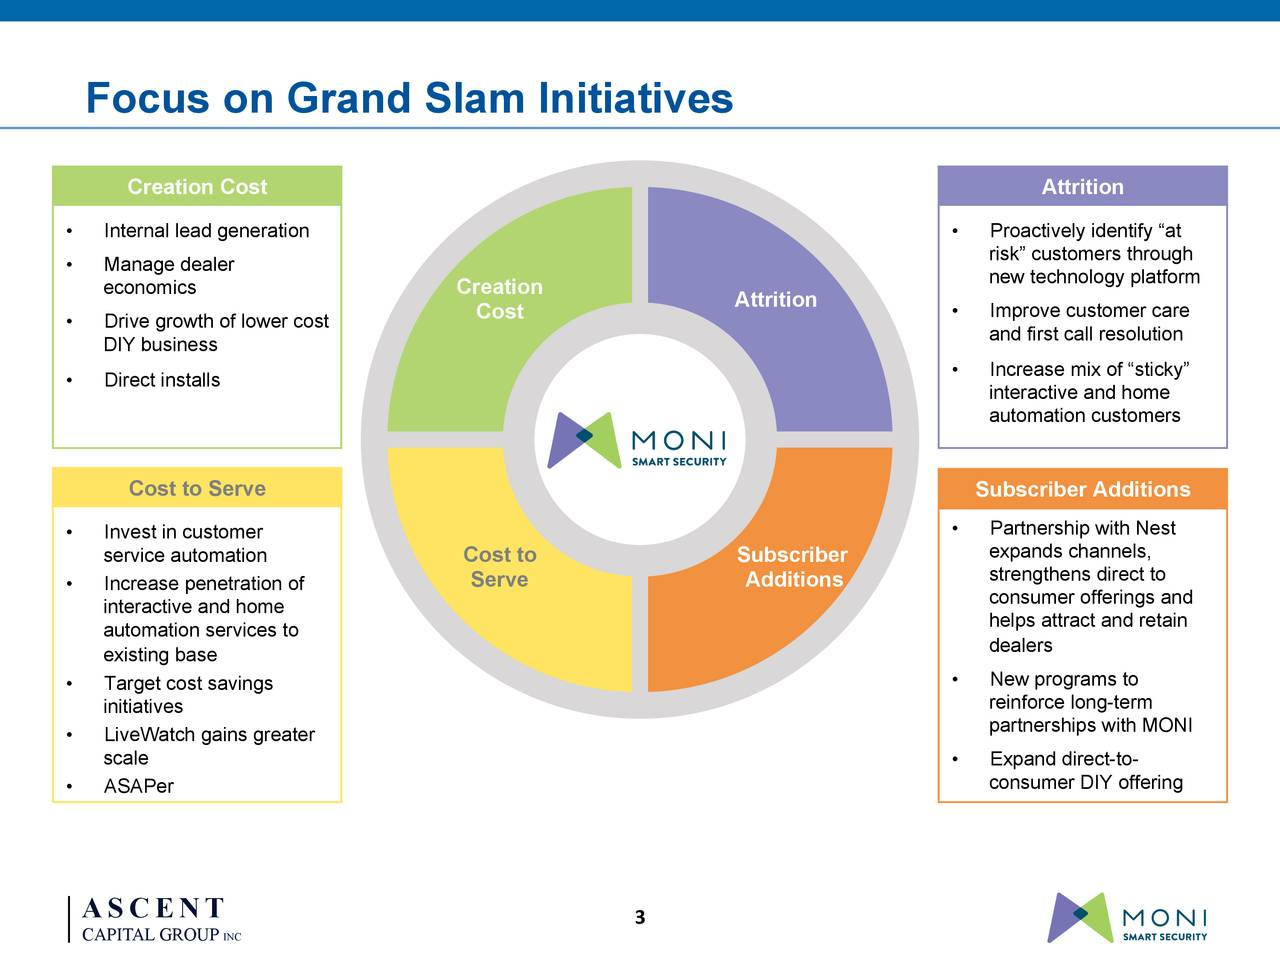 """0-‐83-‐155 119-‐115-‐181 164-‐207-‐94 Focus on Grand Slam Initiatives 1-‐79-‐110 Creation Cost Attrition • Internal lead generation • Proactively identify """"at • Manage dealer risk"""" customers through economics Creation new technology platform Attrition • Drive growth of lower cost Cost • Improve customer care DIY business and first call resolution • Increase mix of """"sticky"""" • Direct installs interactive and home automation customers Cost to Serve Subscriber Additions • Invest in customer • Partnership with Nest expands channels, service automation Cost to Subscriber strengthens direct to • Increase penetration of Serve Additions interactive and home consumer offerings and automation services to helps attract and retain existing base dealers • Target cost savings • New programs to initiatives reinforce long-term • LiveWatch gains greater partnerships with MONI scale • Expand direct-to- • ASAPer consumer DIY offering ASCENT 3 CAPITAL GROUP INC"""